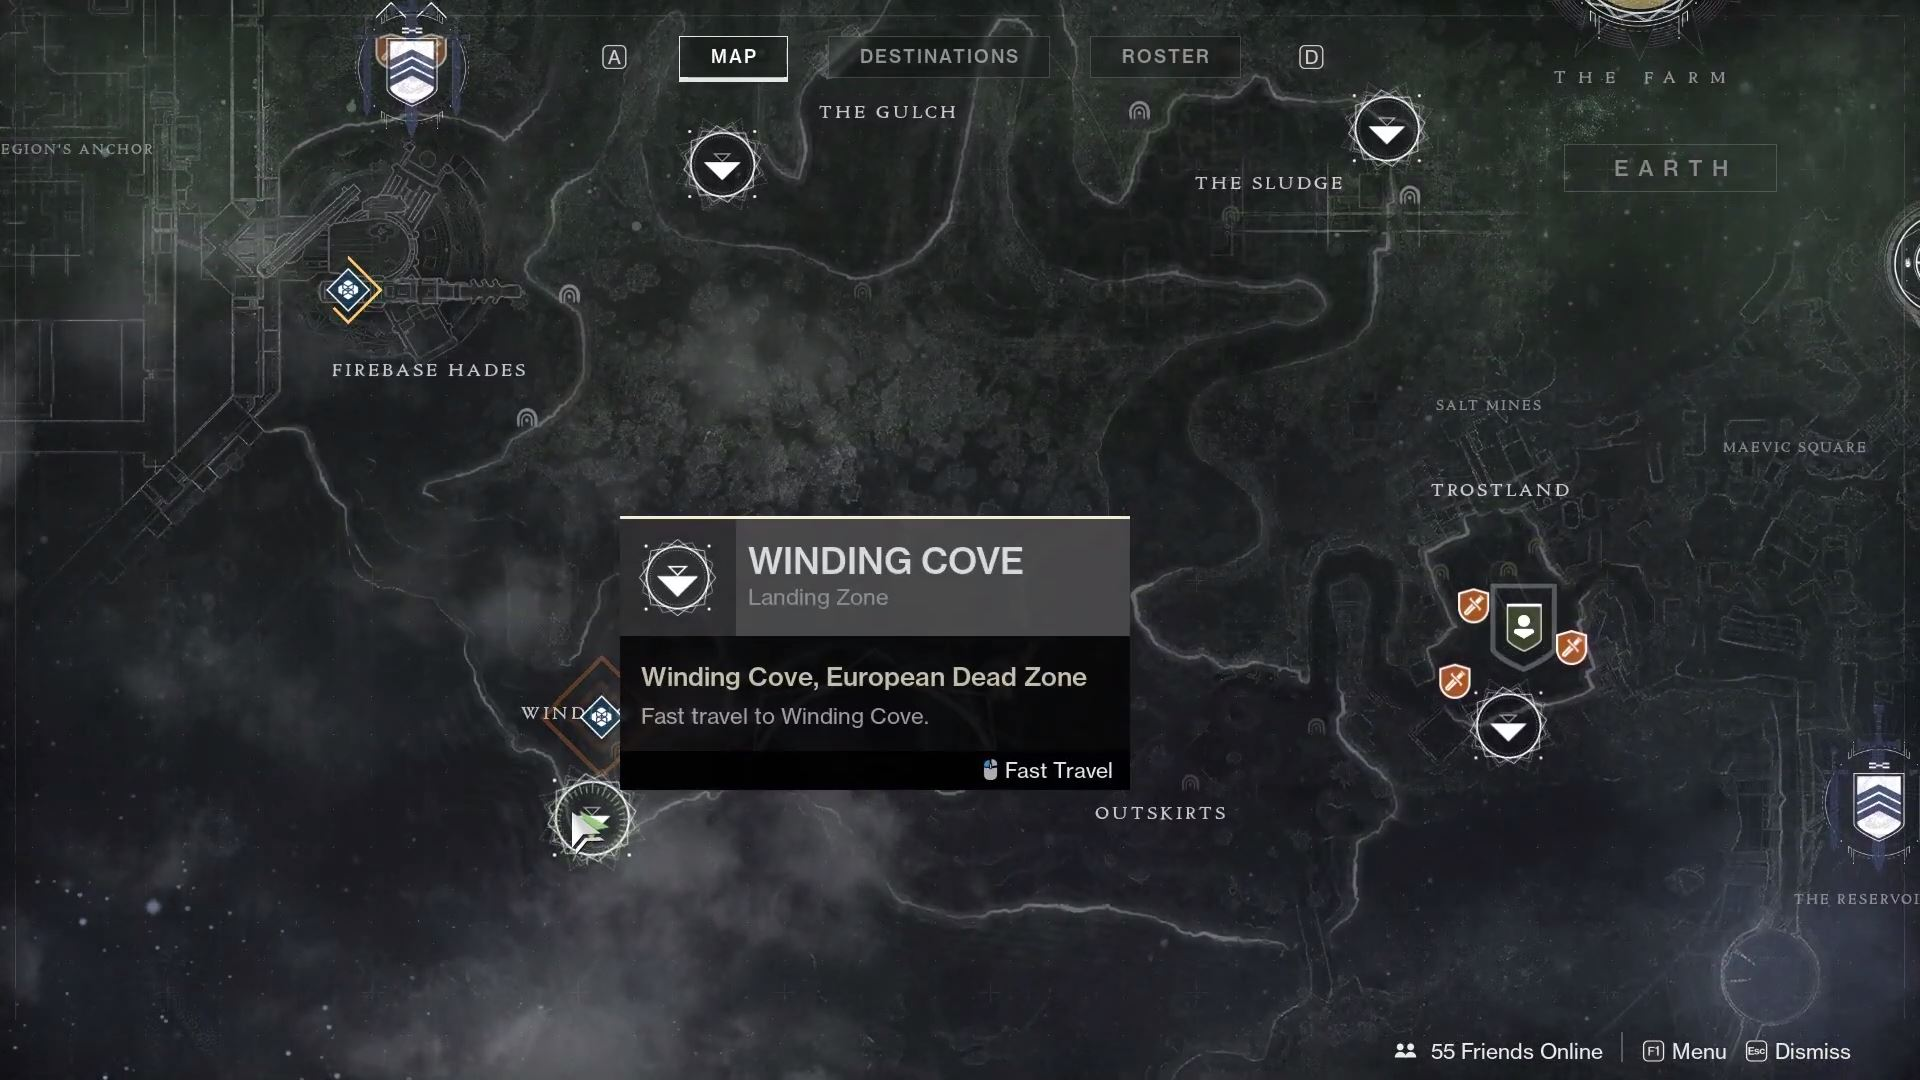 Starting January 4, Xur can be found near the Winding Cove in Destiny 2.